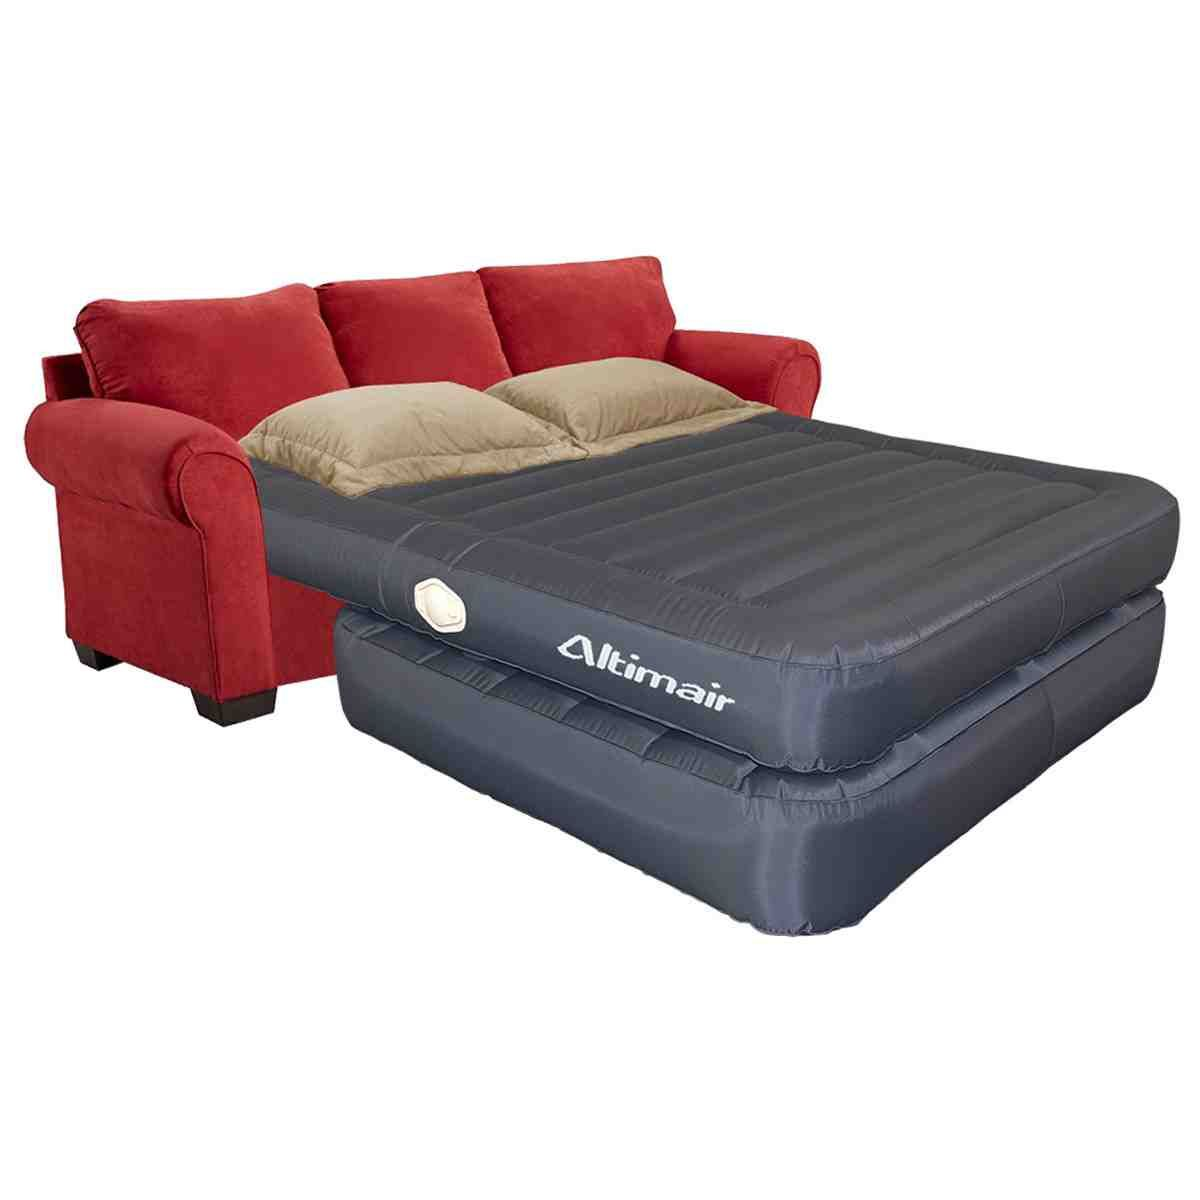 What Is The Best Air Mattress To Buy Rv Sofa Bed Air Bed Rv Sofas